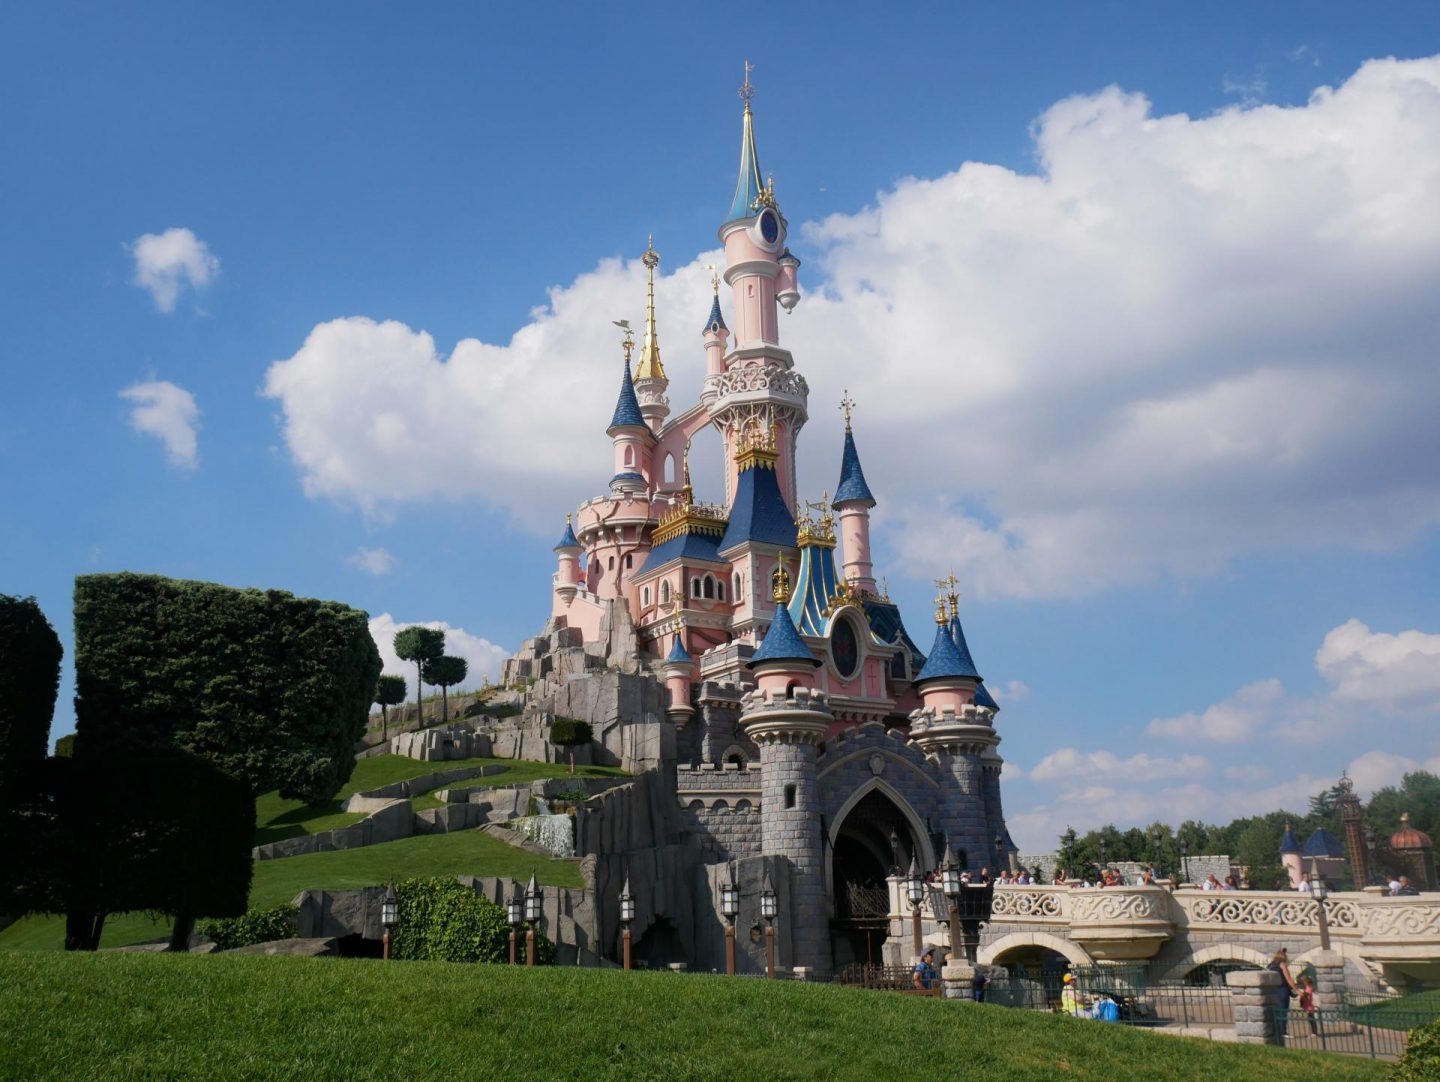 disneyland-paris-my-22nd-birthday-trip-rachel-nicole-uk-travel-disney-blogger-1